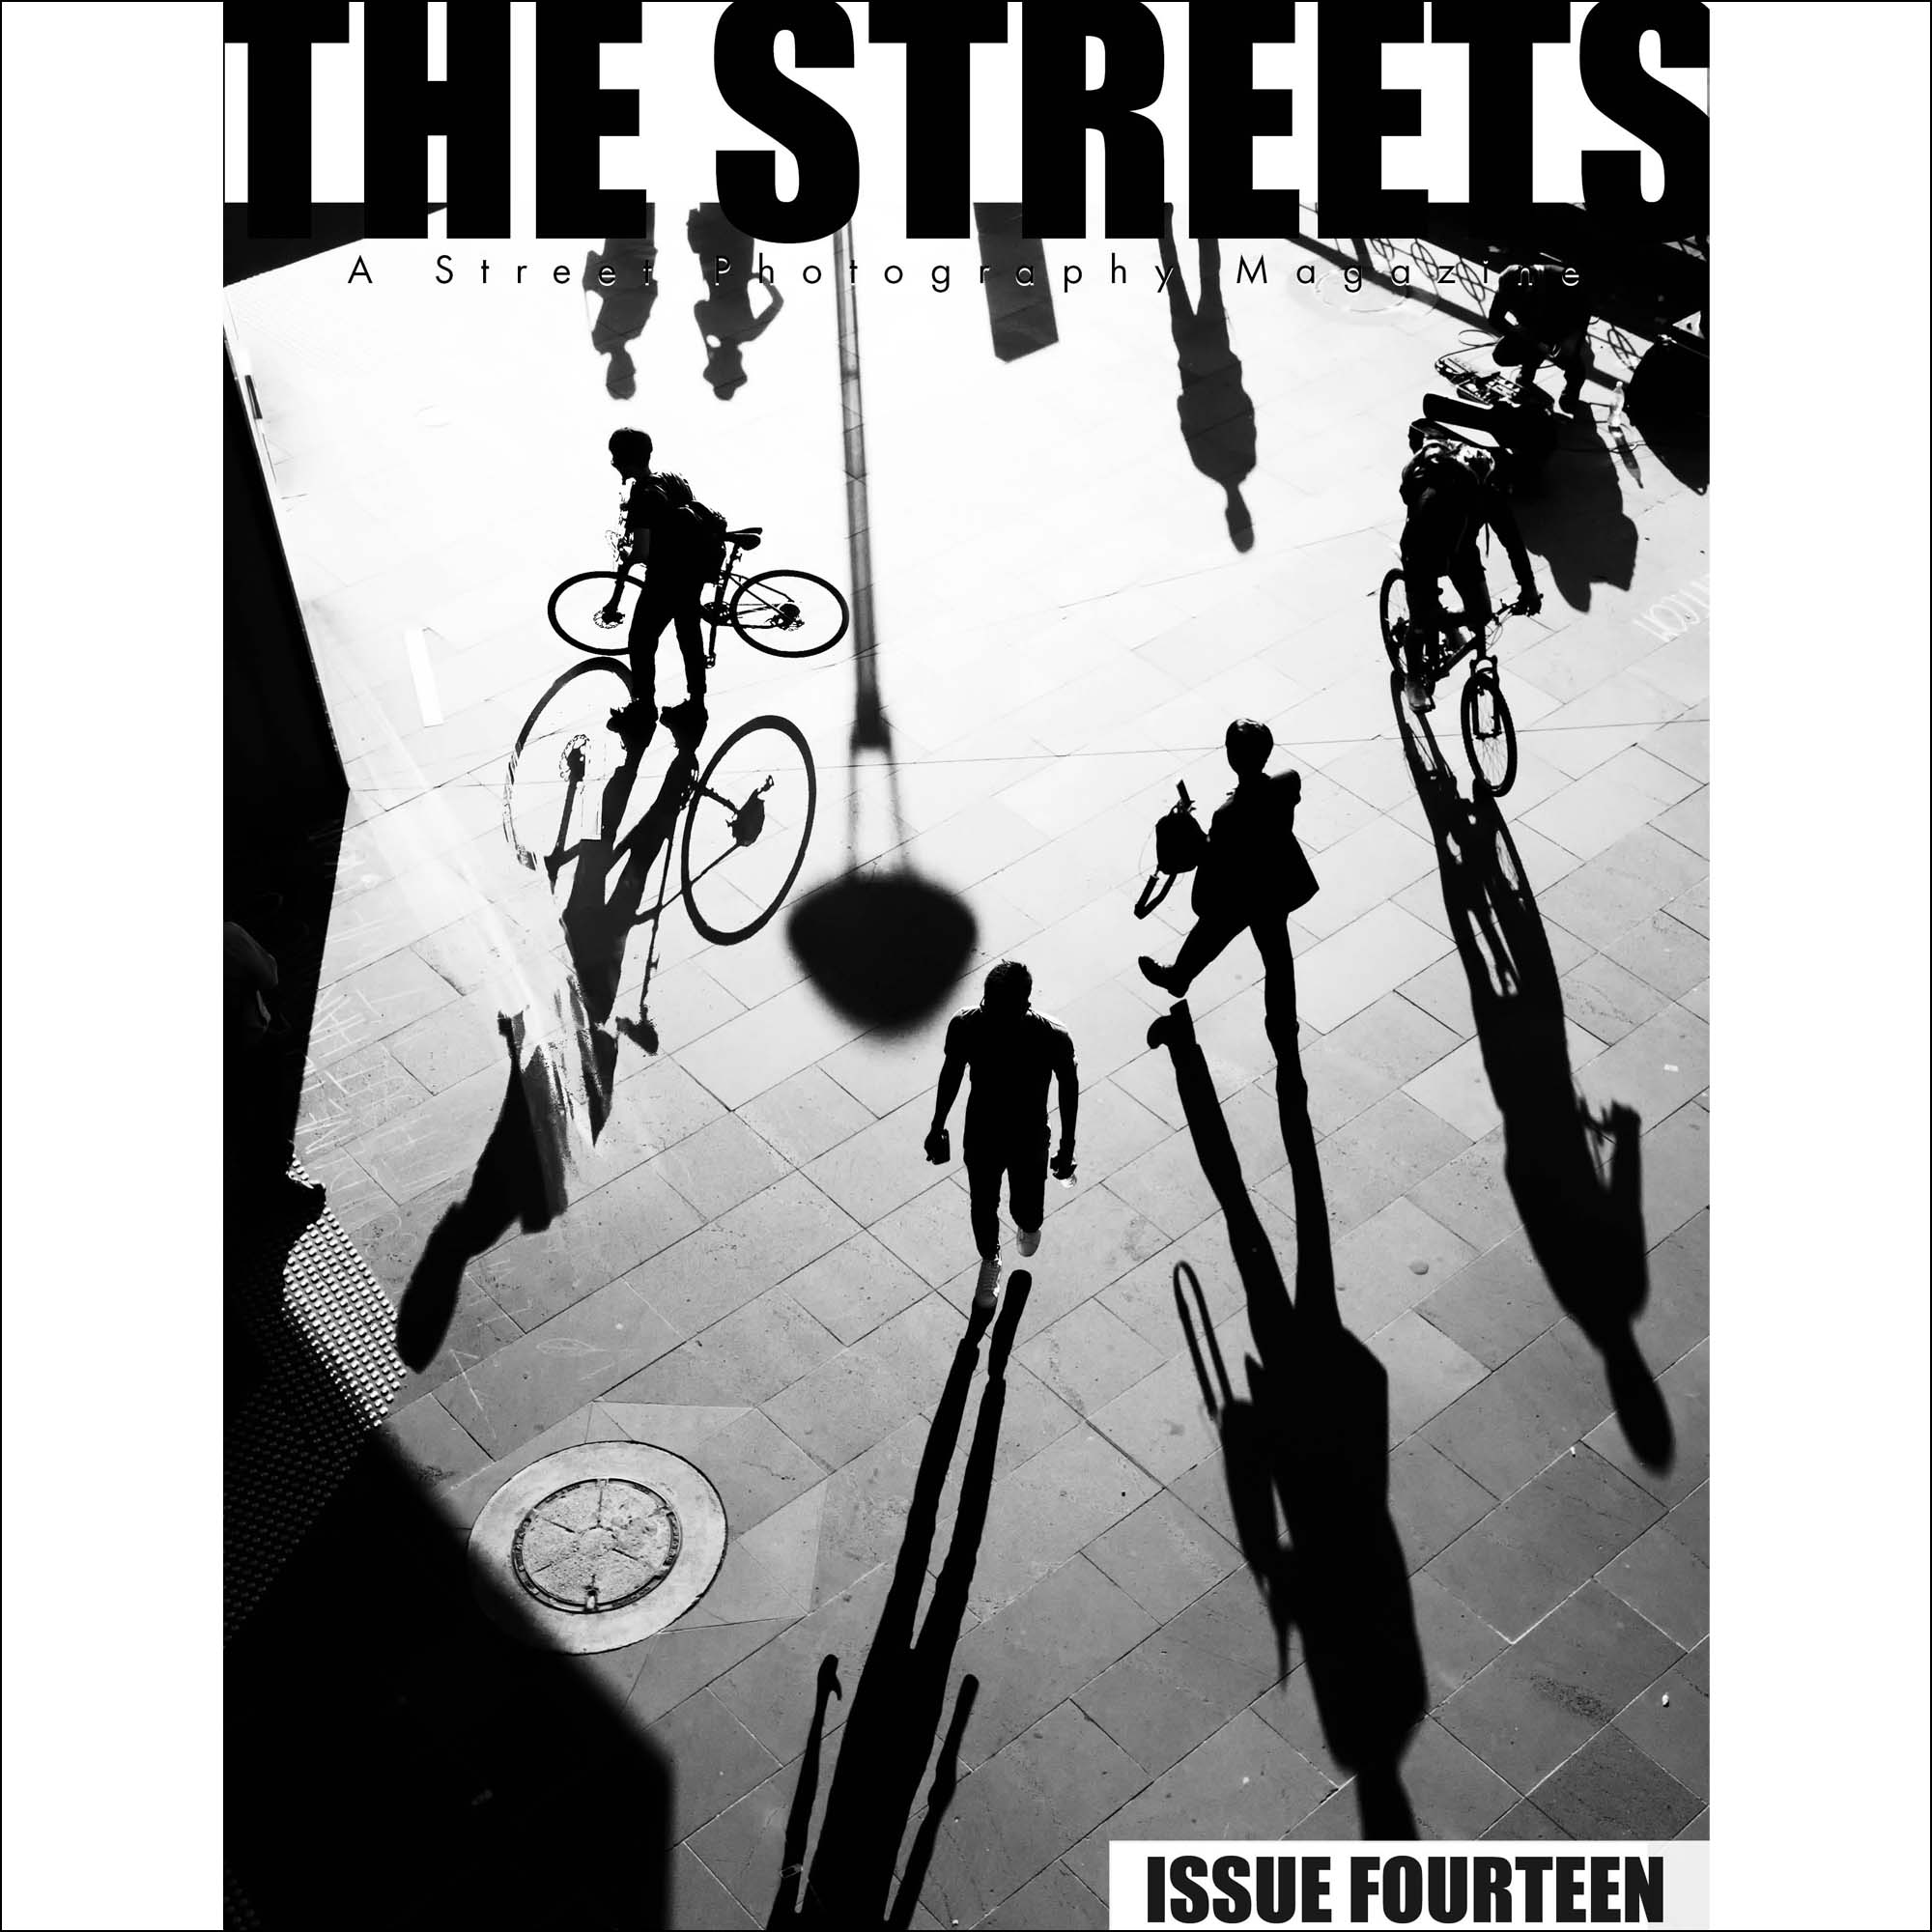 THE STREETS - issue Fourteen